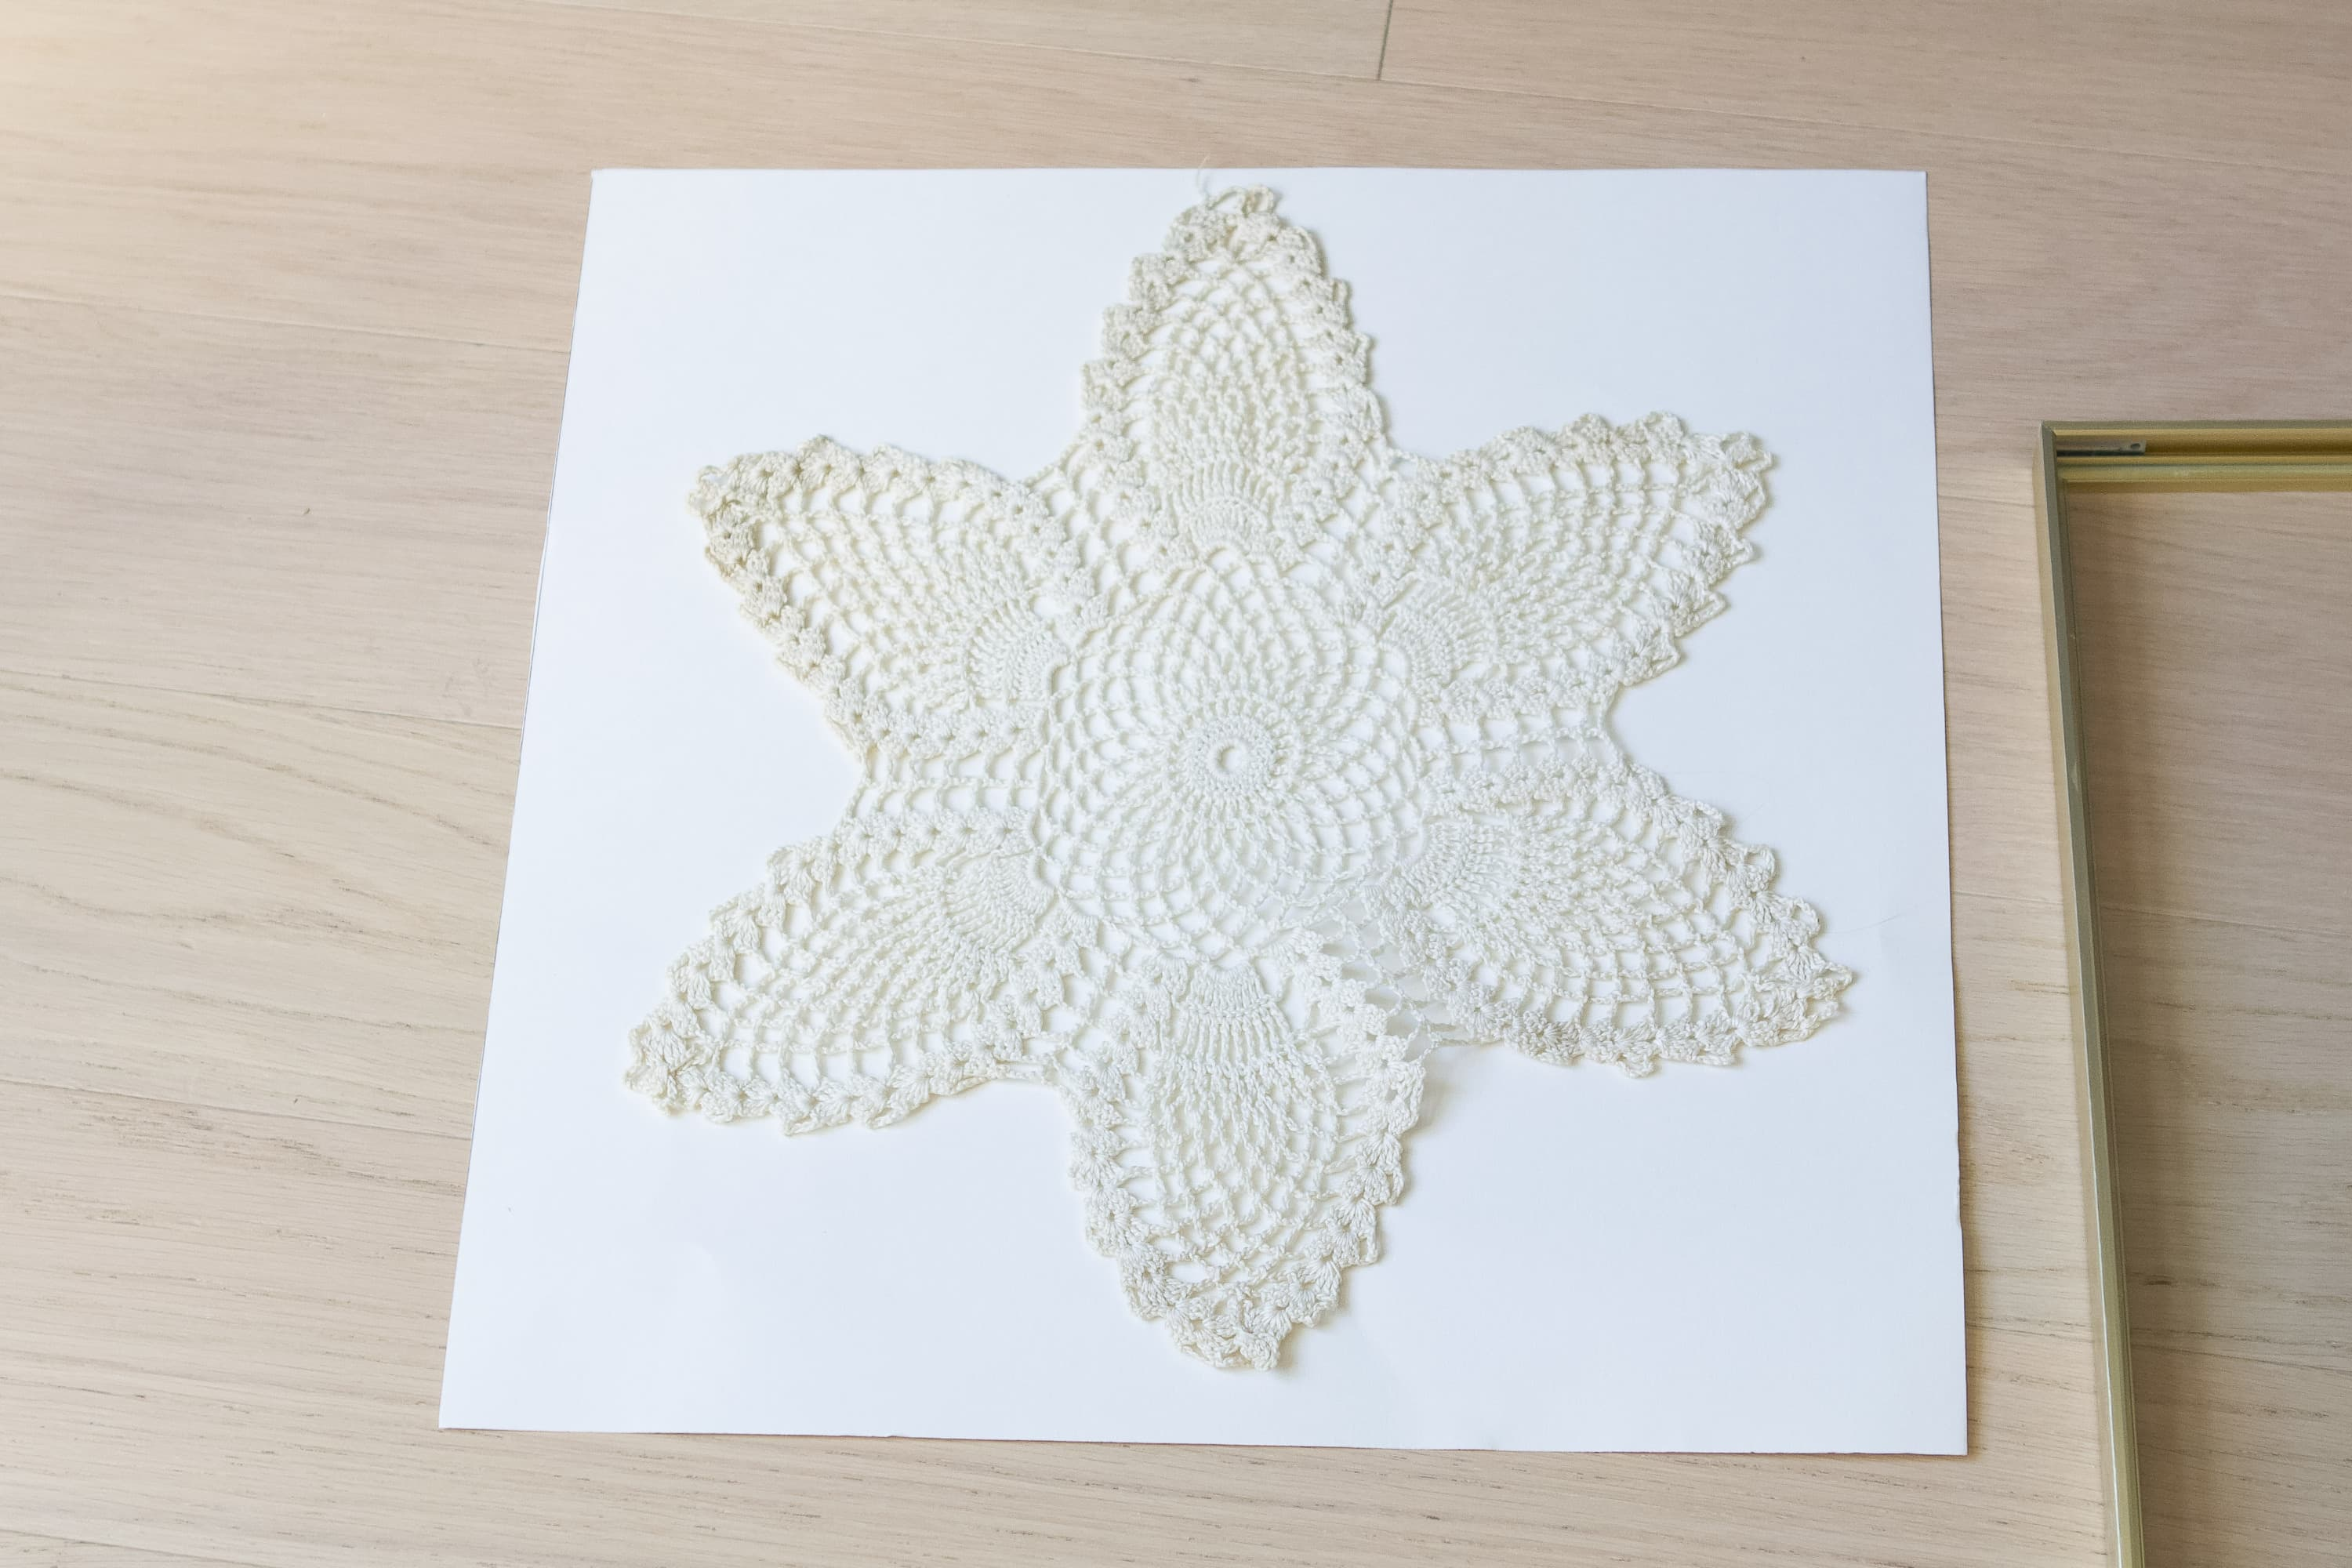 Using posterboard to display my doily